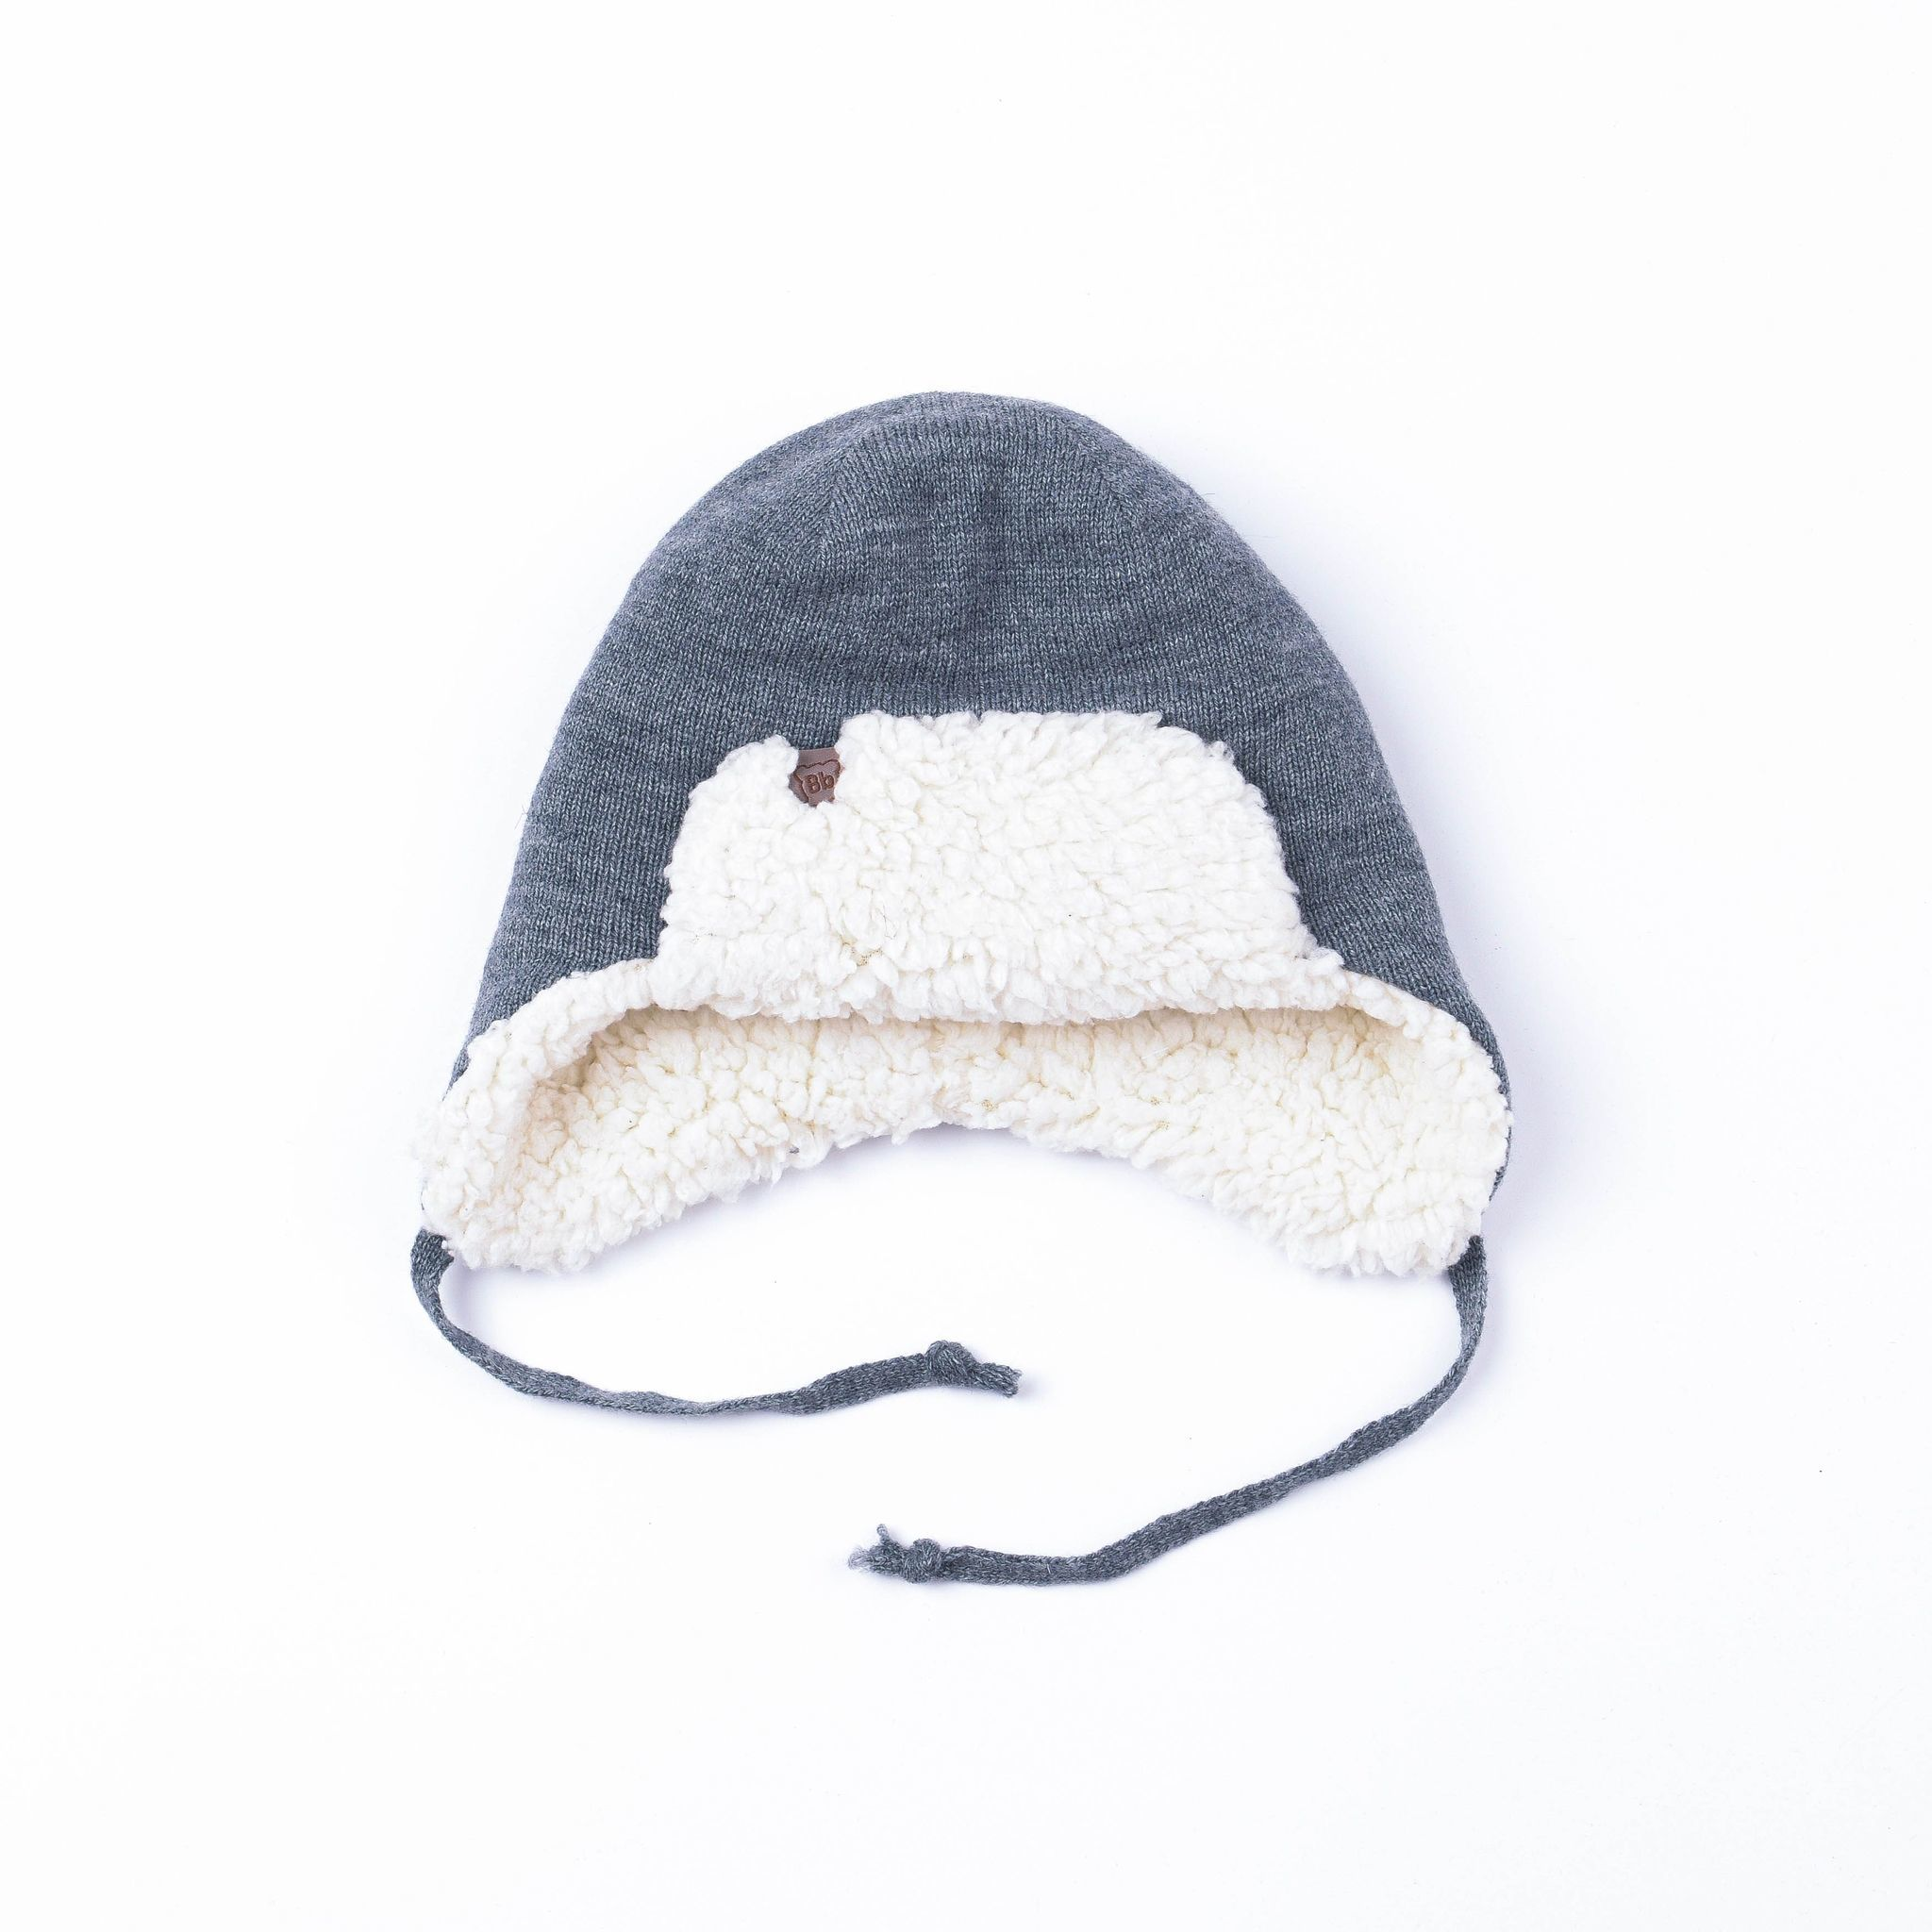 Earflapped hat with fur lining - Graphite Melange